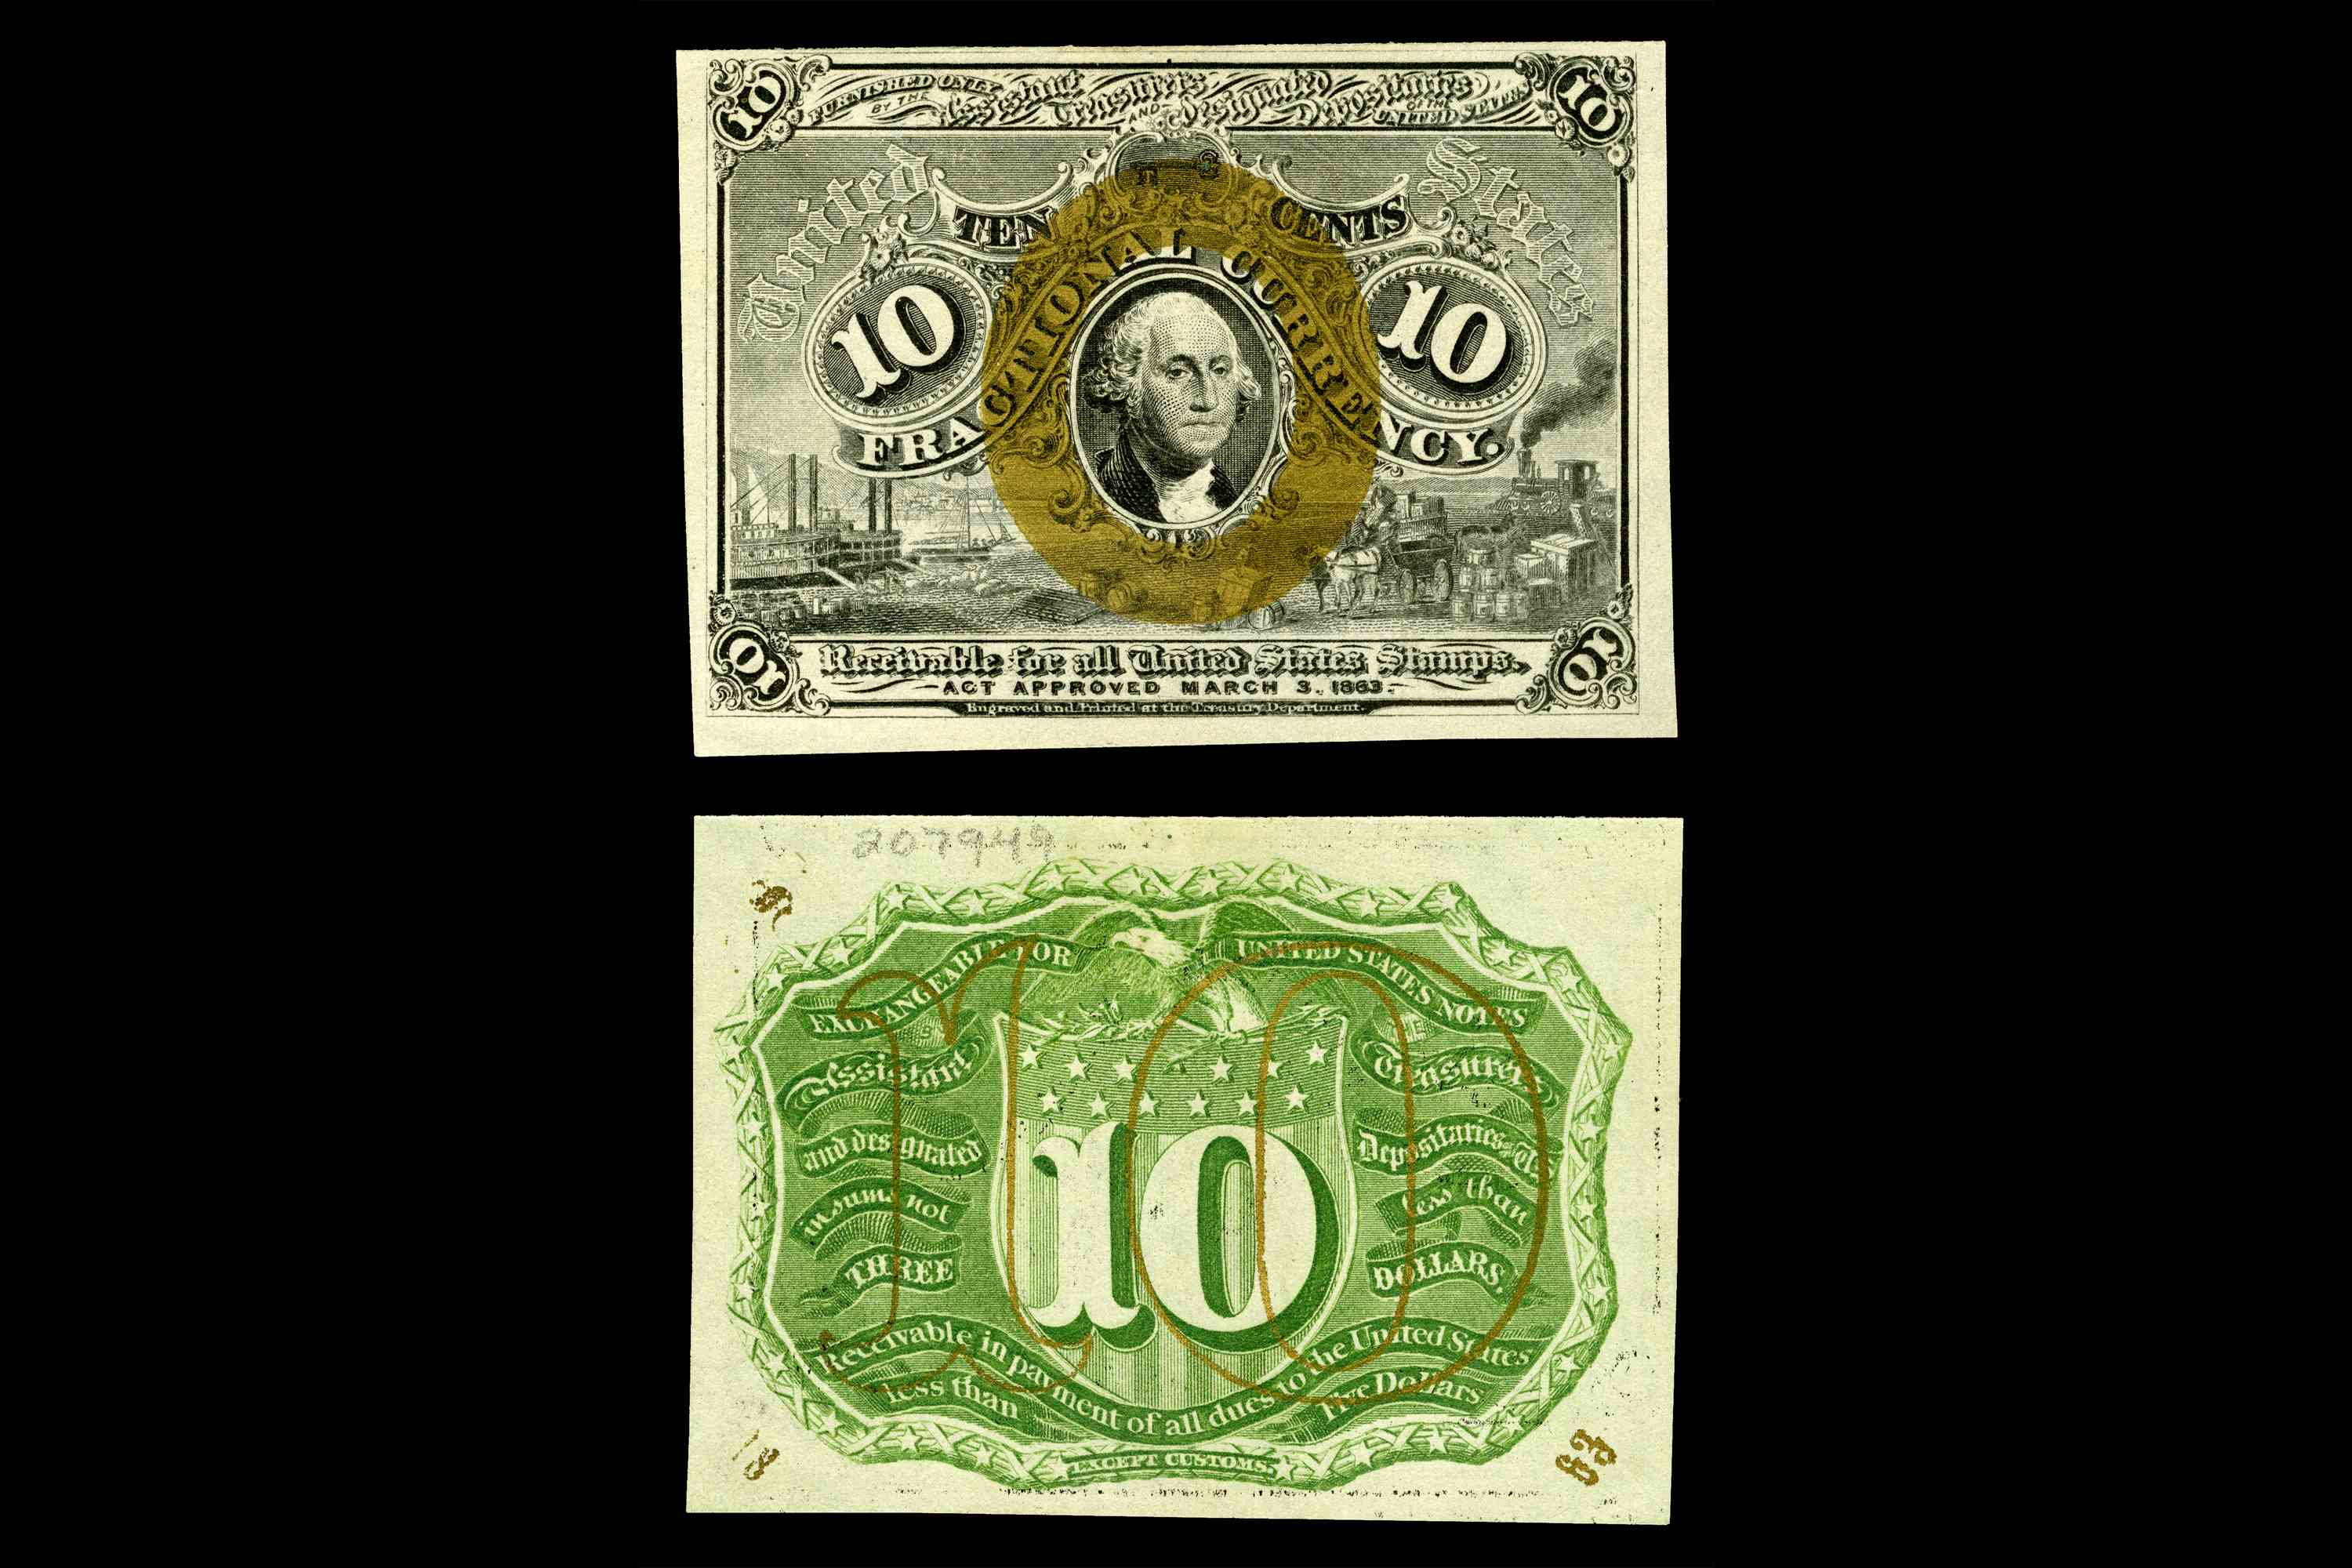 United States fractional currency second issue ten cent note